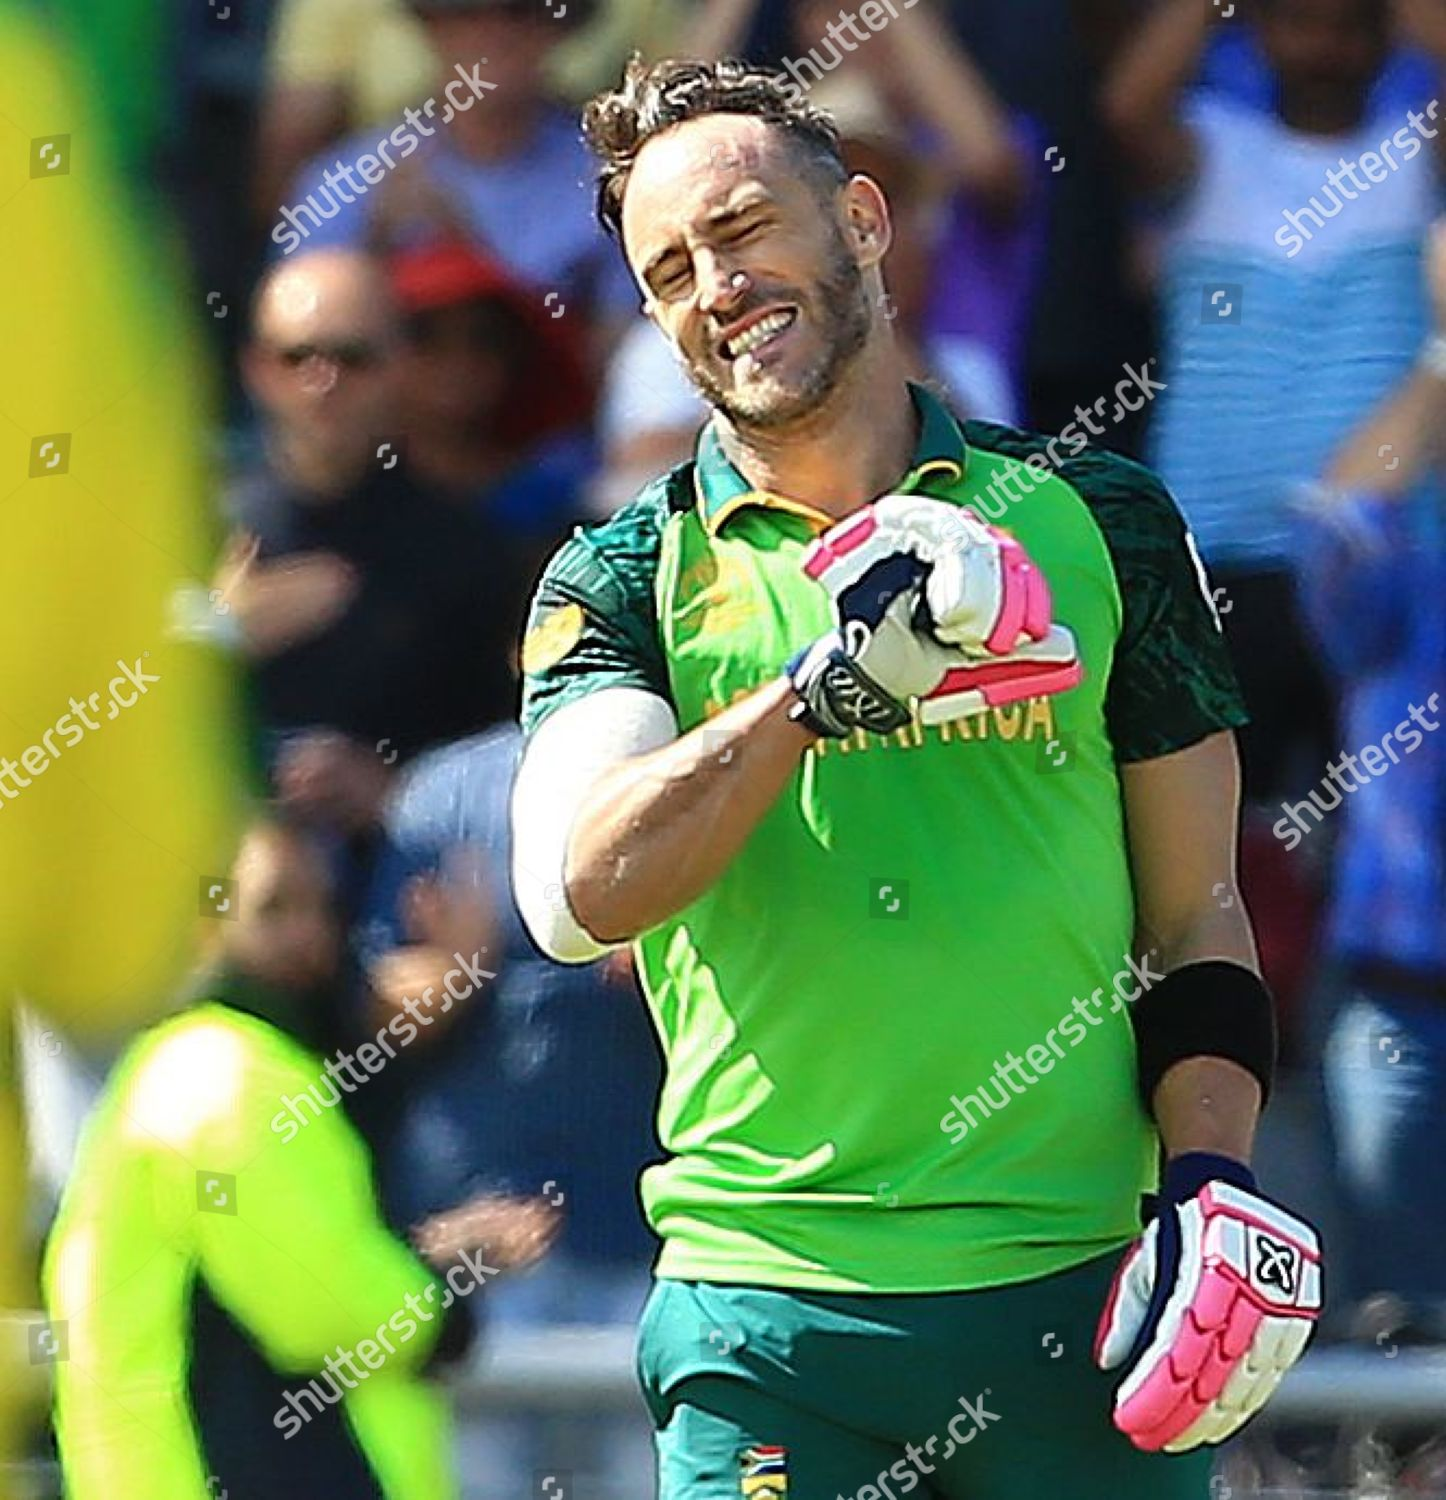 Faf du Plessis South Africa celebrates after Editorial Stock Photo